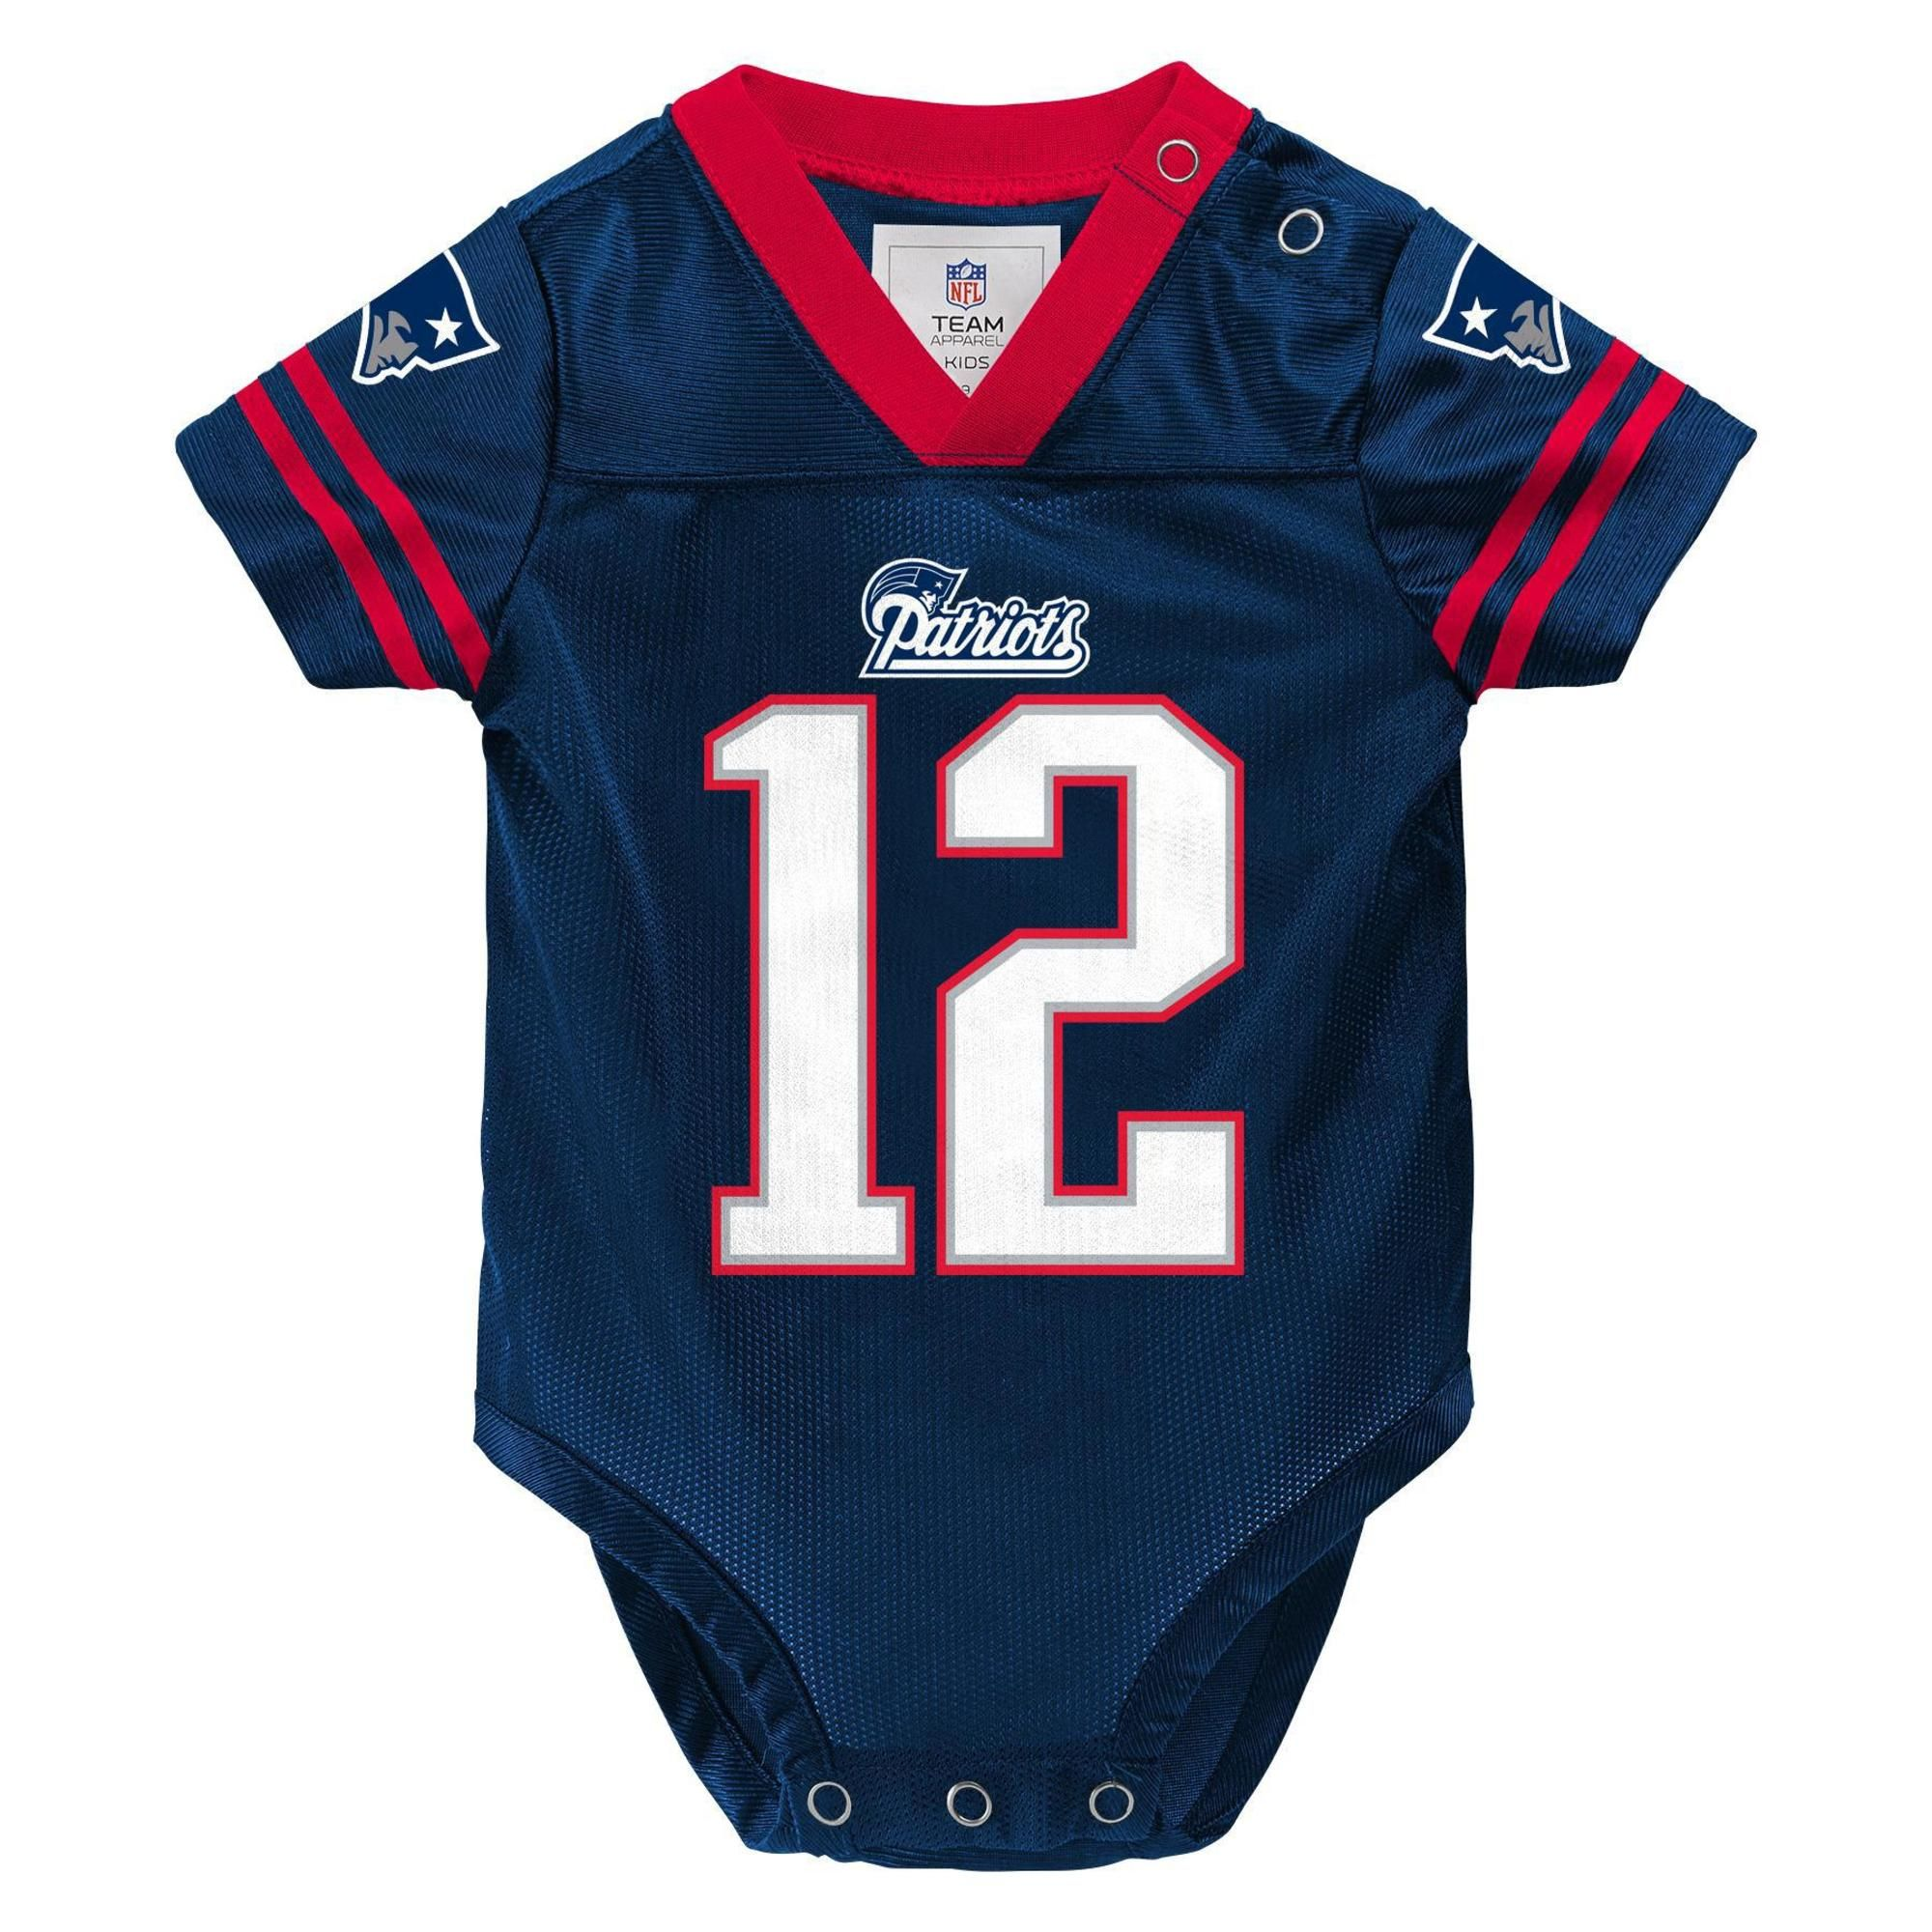 official photos fdcca 8423e NFL Infants' Player Jersey Bodysuit - New England Patriots ...